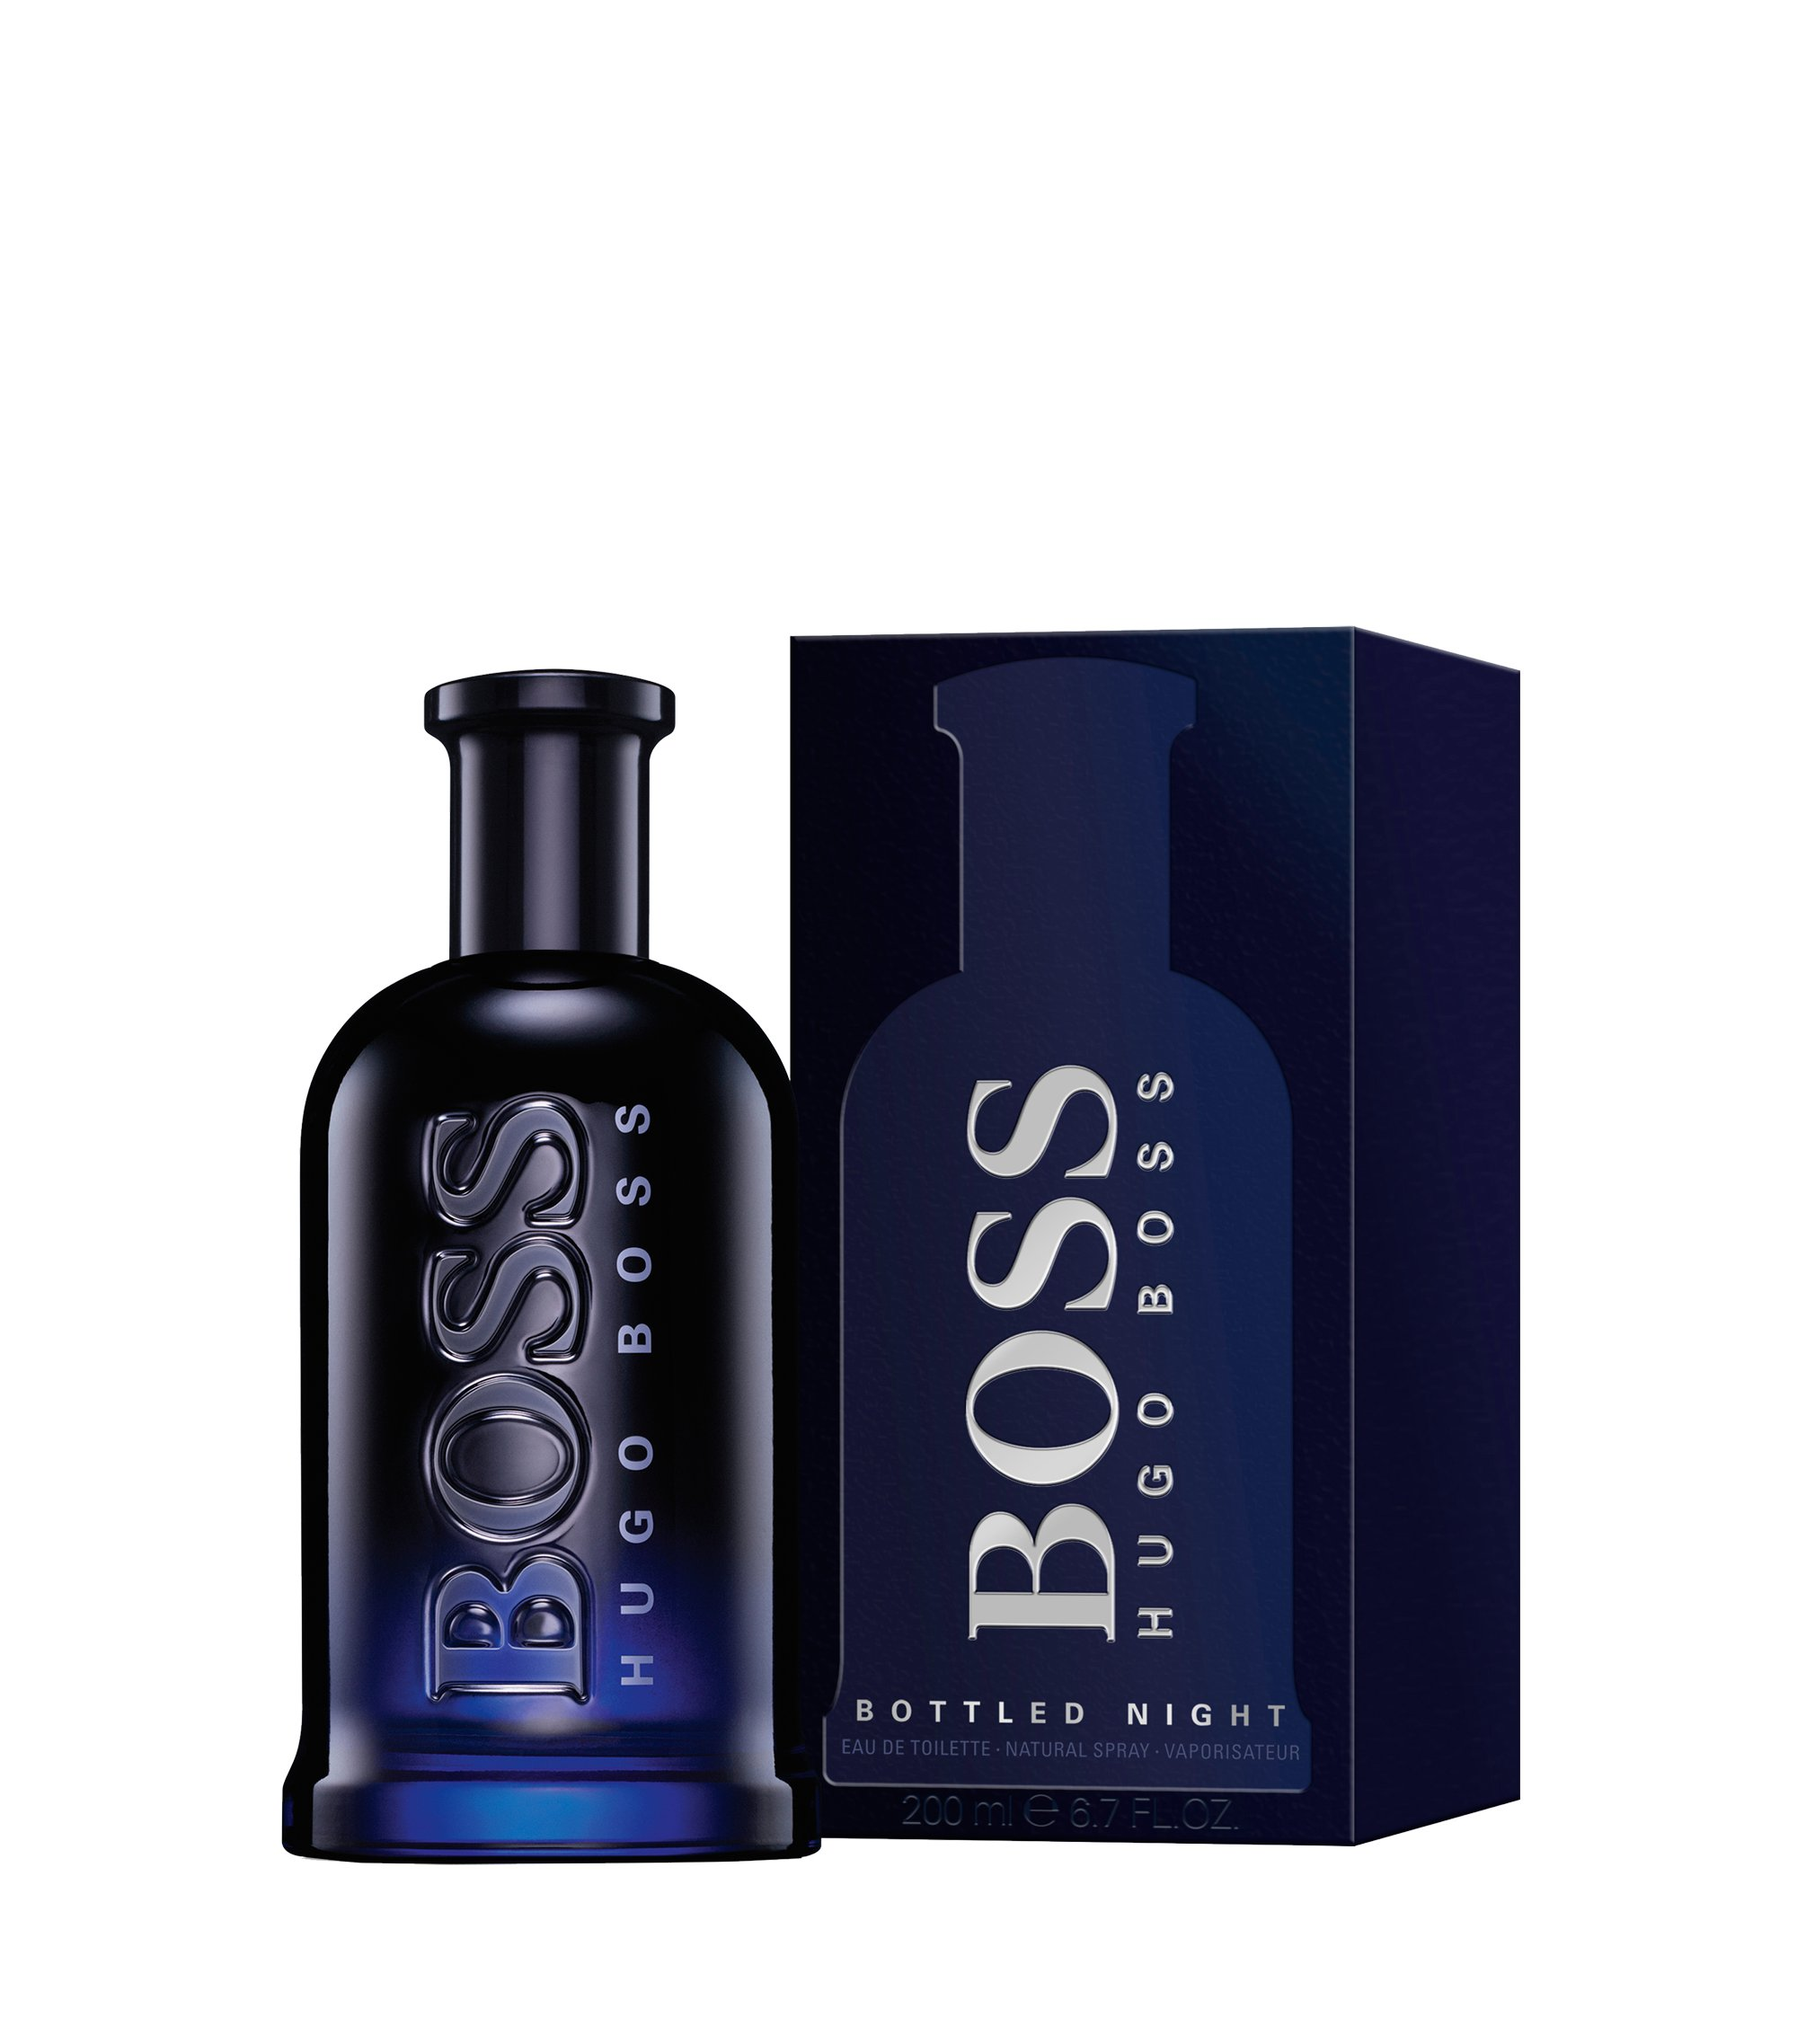 BOSS Bottled Night eau de toilette 200ml , Assorted-Pre-Pack